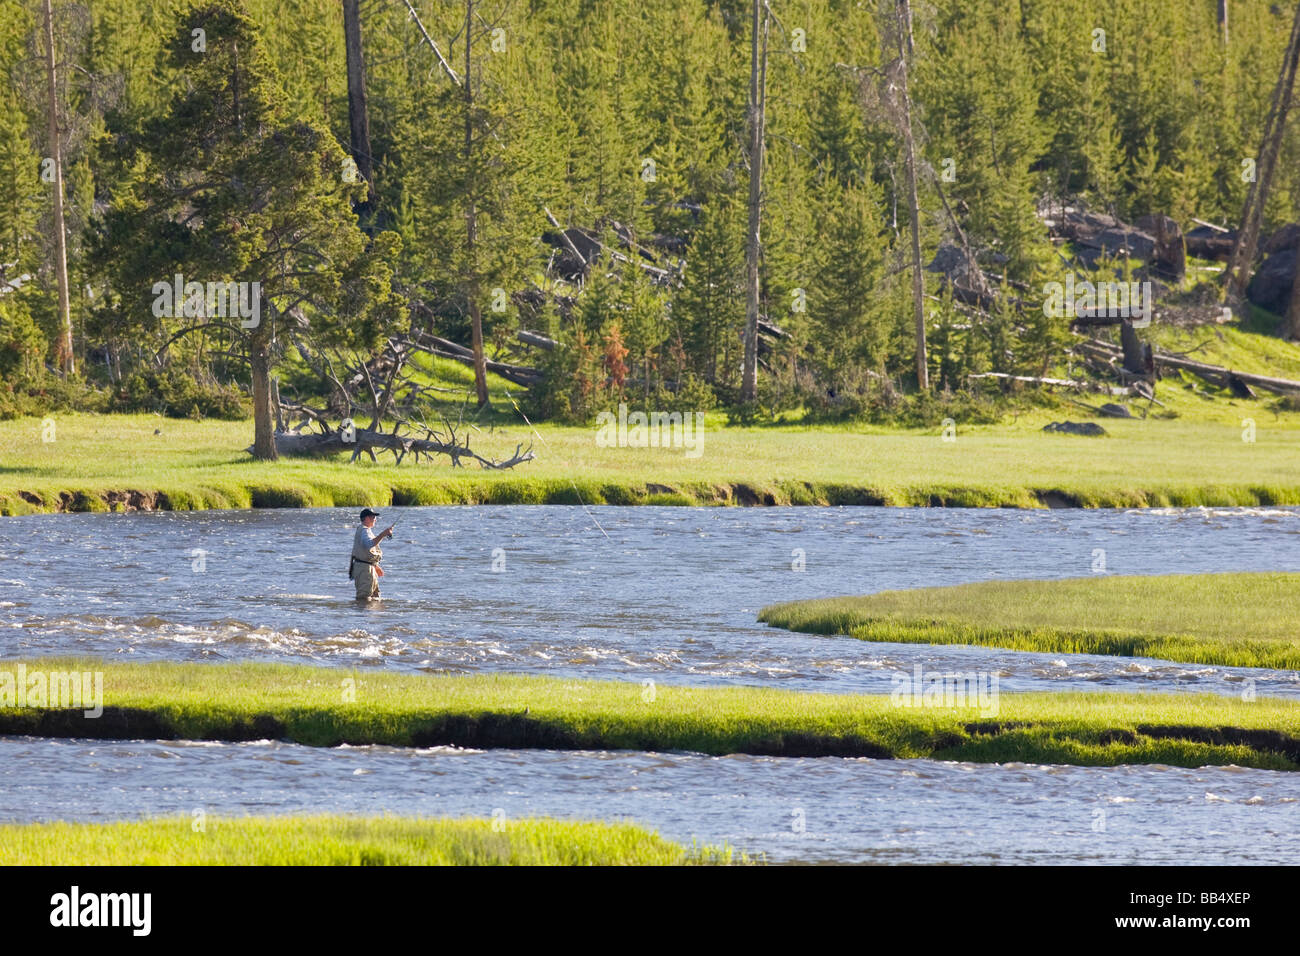 Wy yellowstone national park fly fishing in the for Yellowstone national park fishing